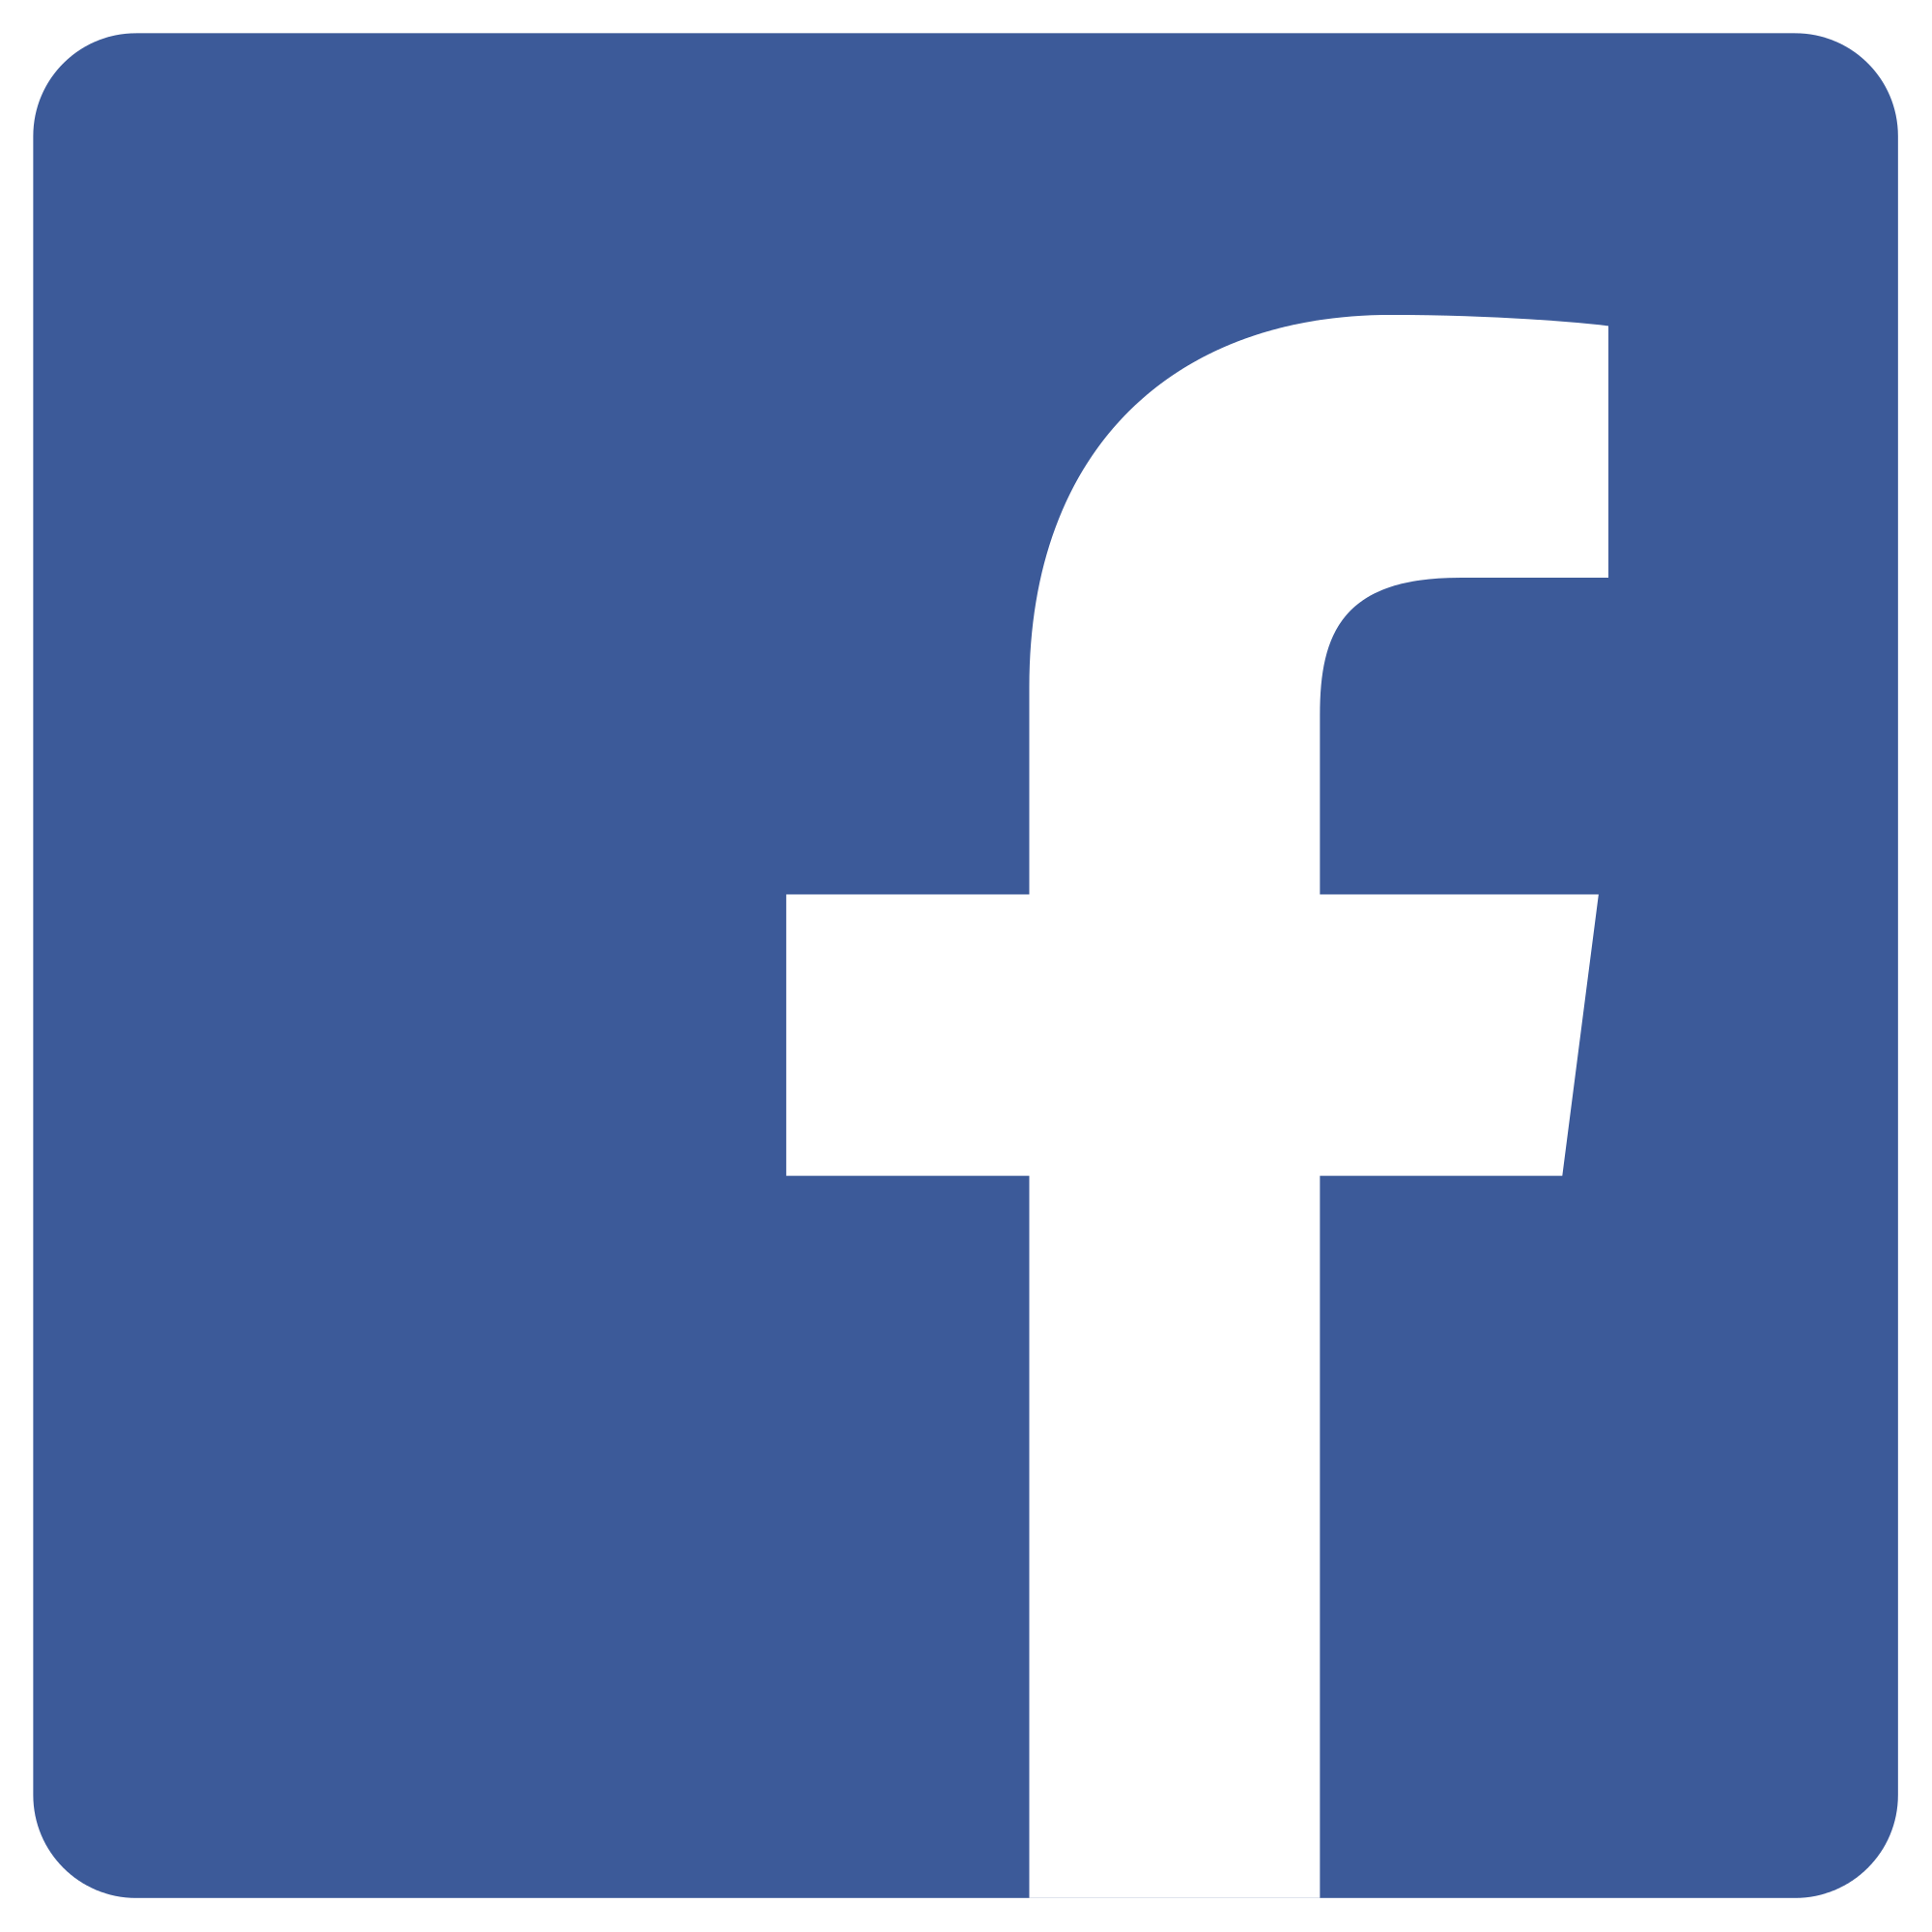 Facebook_icon..png